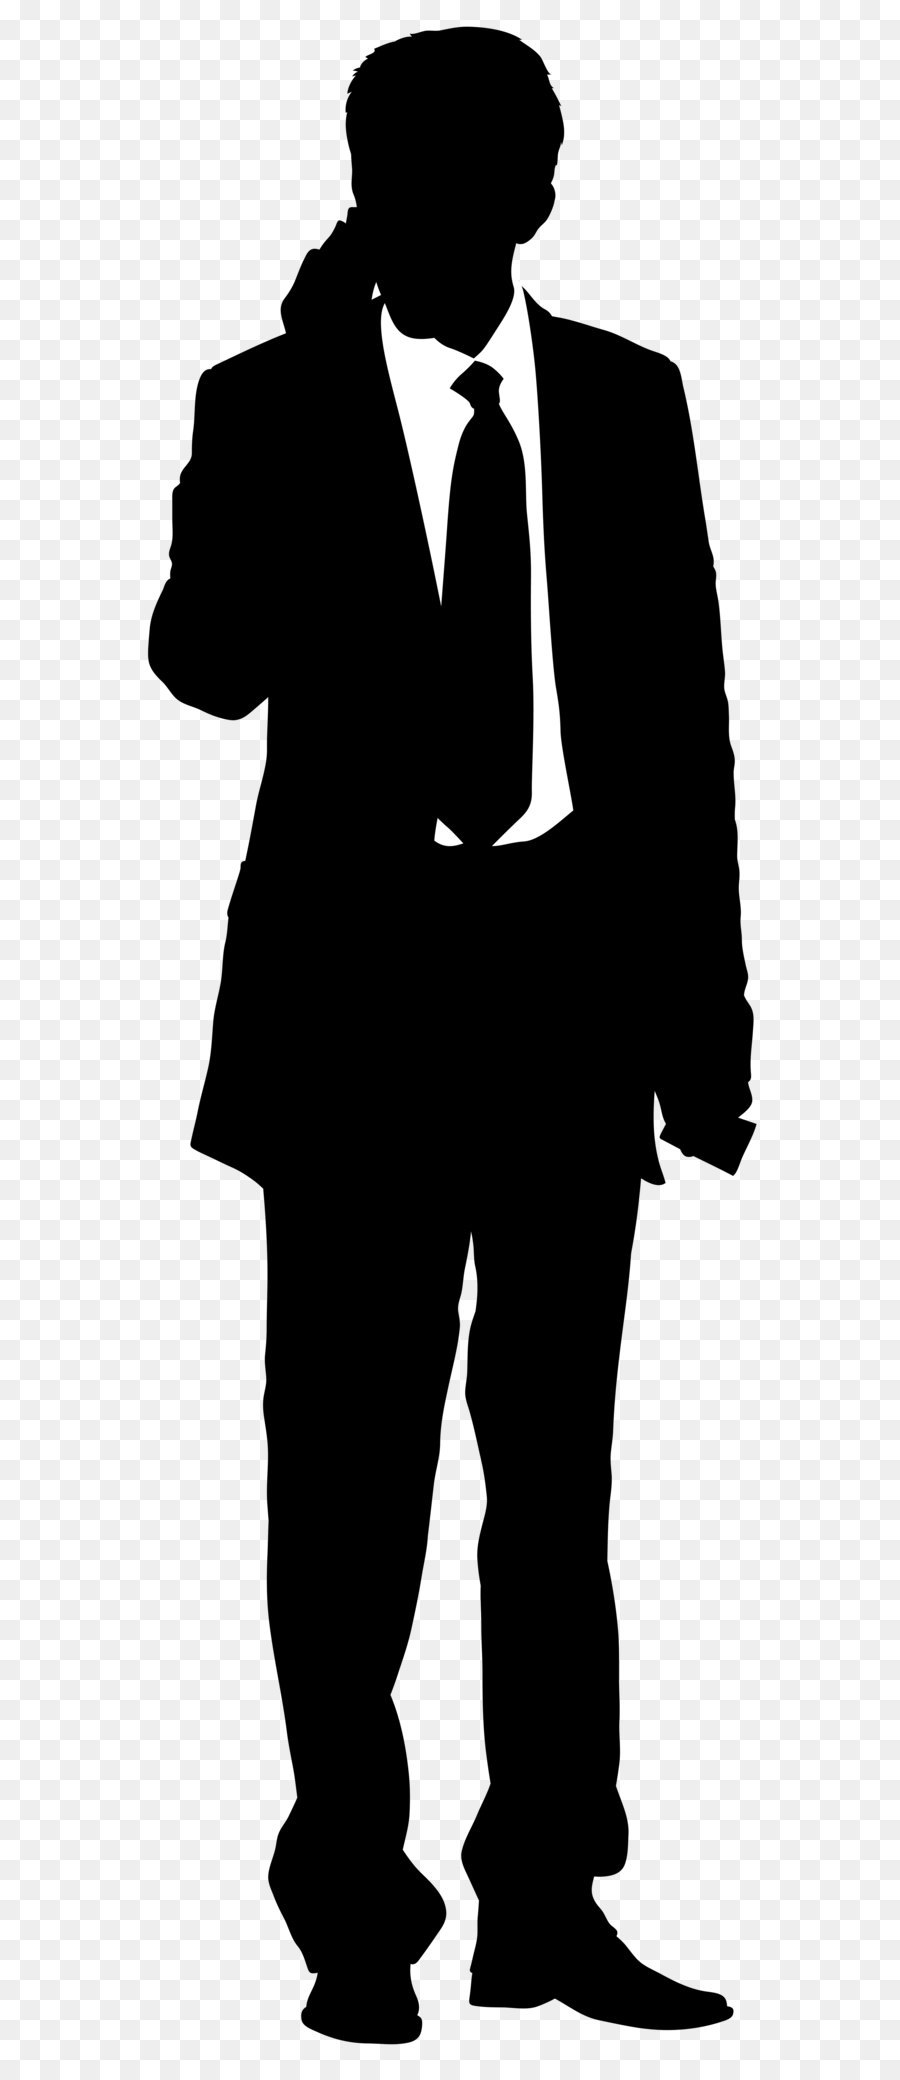 Businessman clipart silhouette. Scalable vector graphics clip